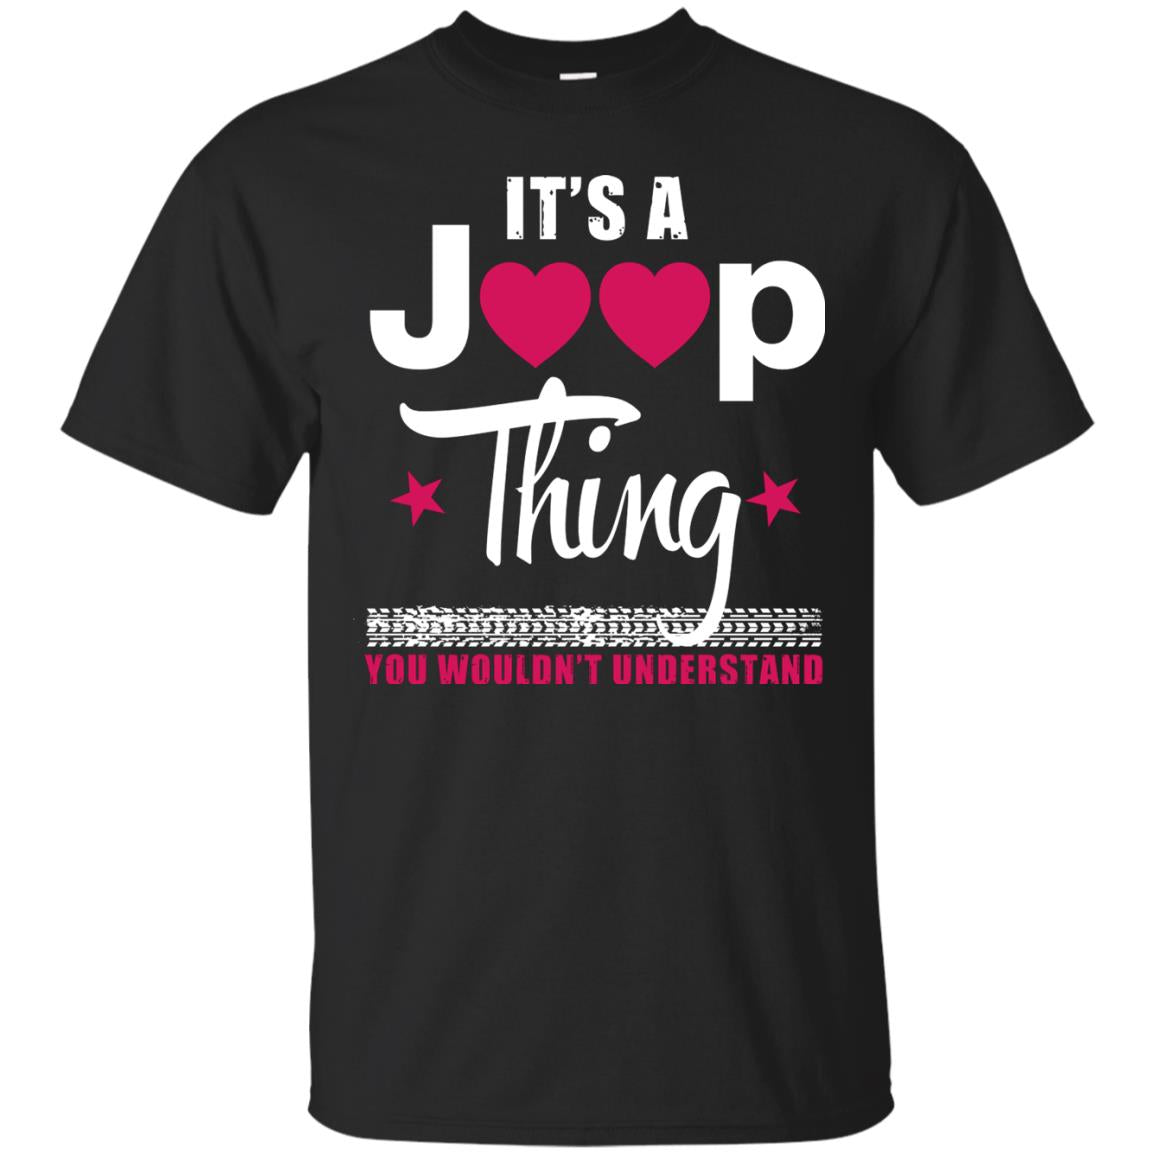 It's A Jeep Thing - Apparel